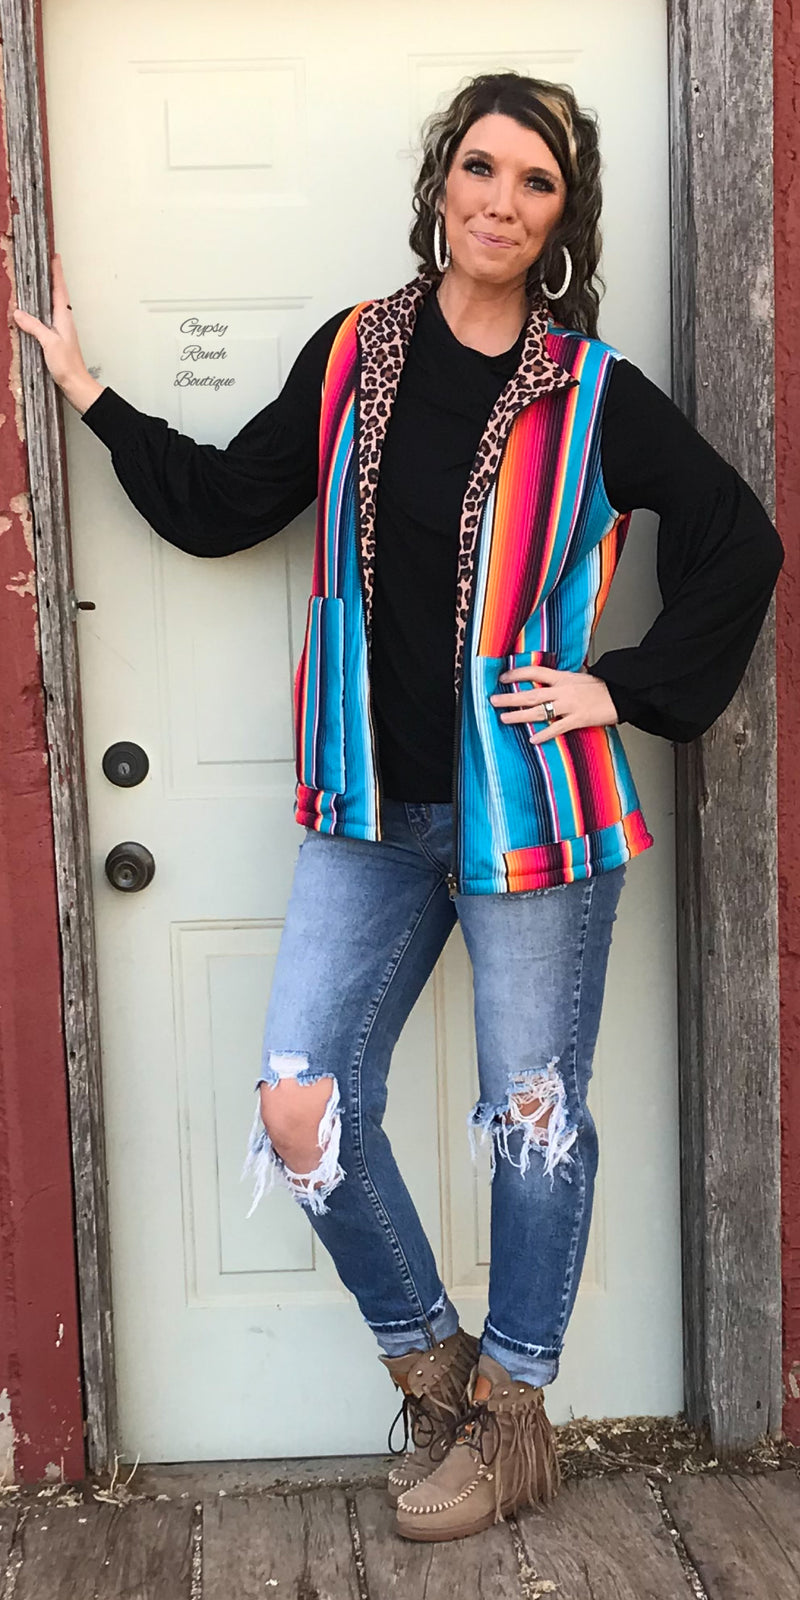 The City Limits Leopard & Serape Vest - Also in Plus Size